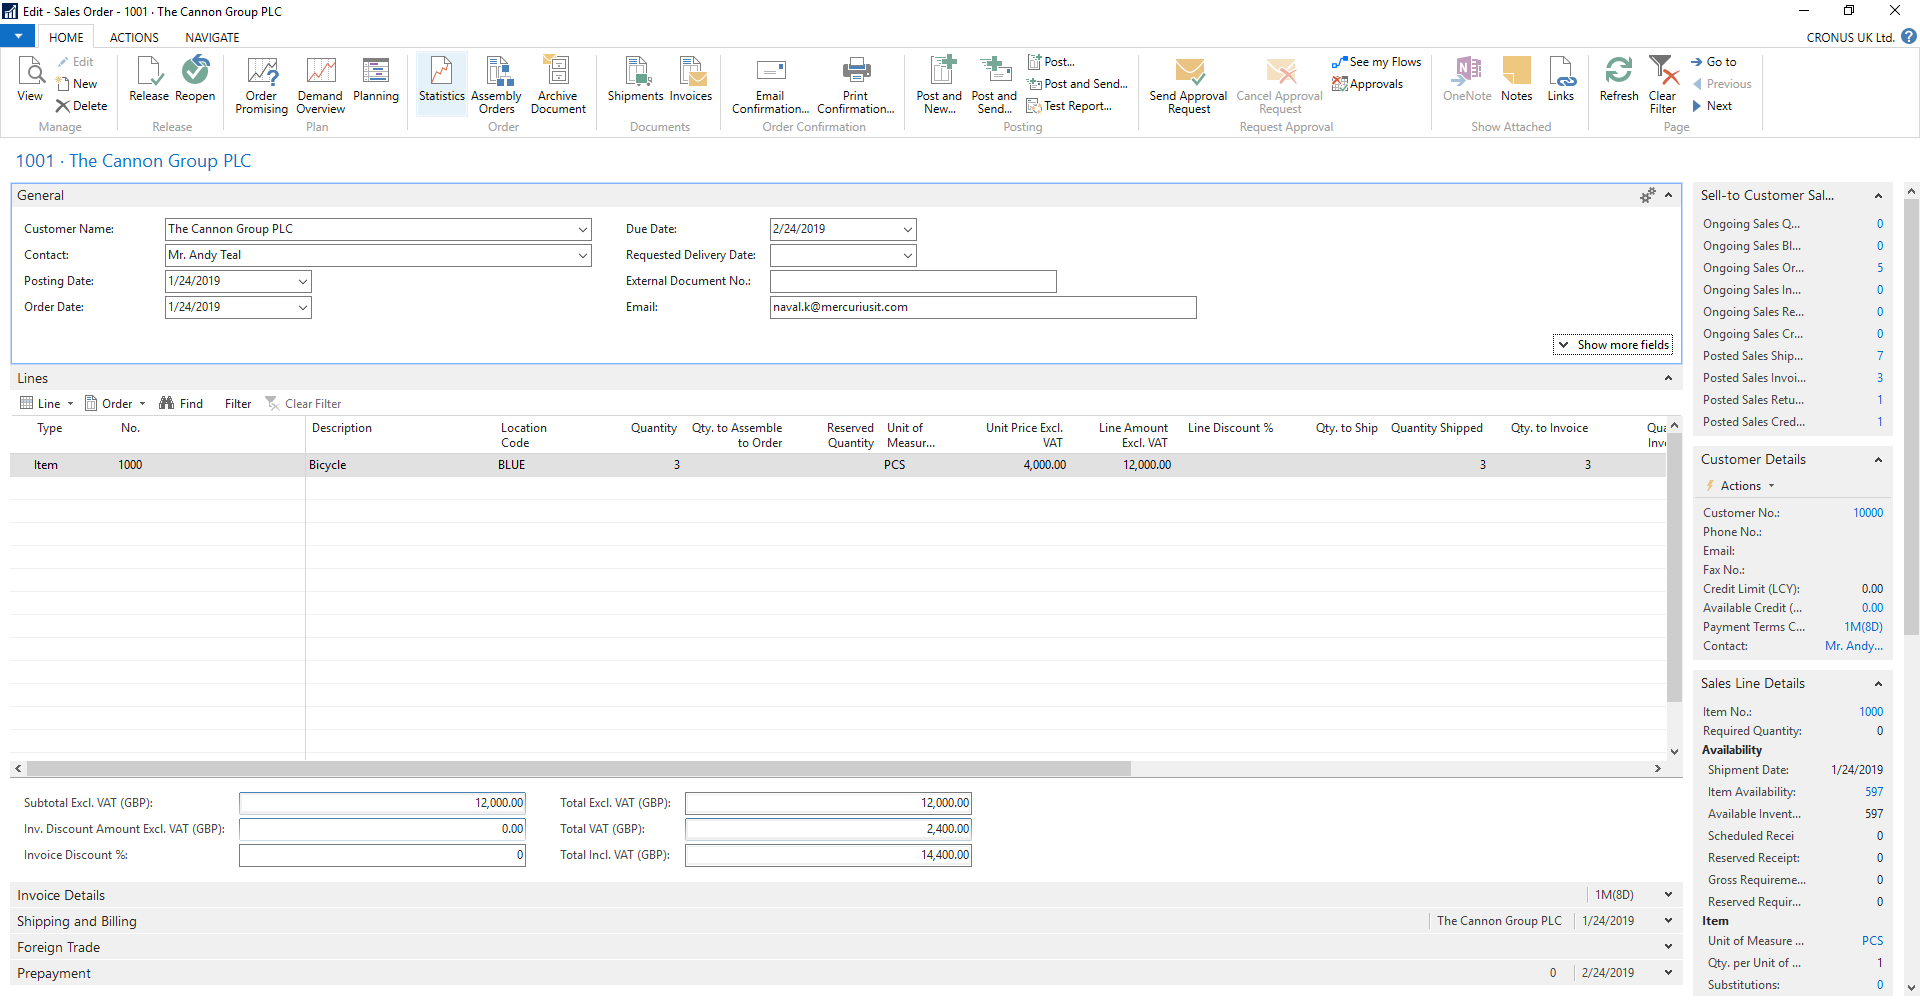 Microsoft Dynamics NAV screen of sales order